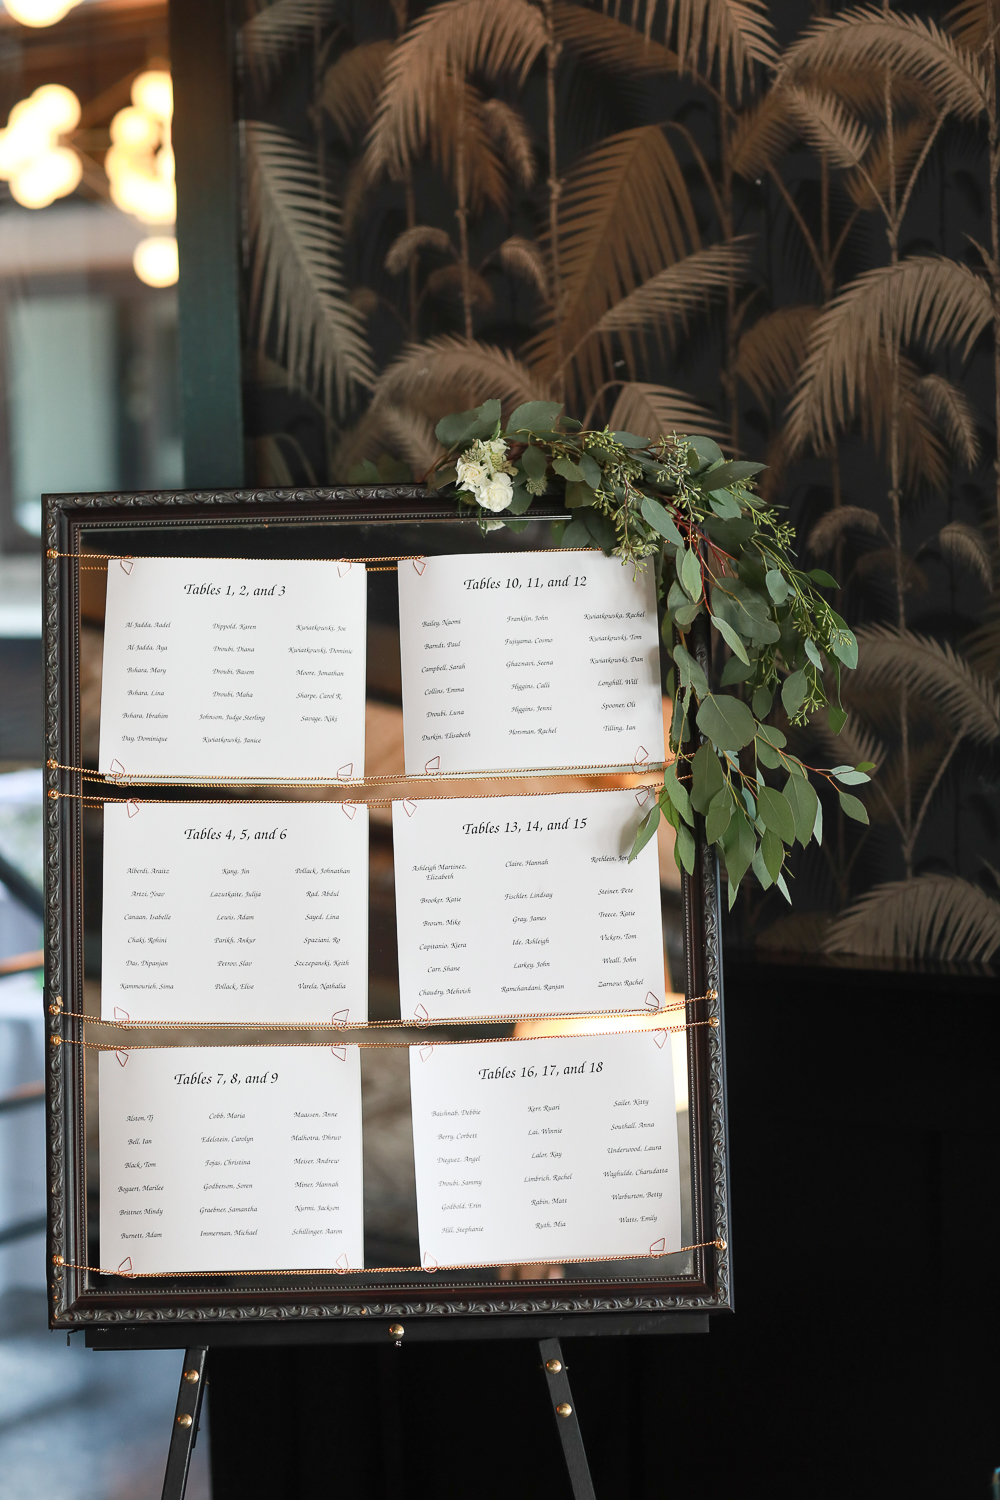 Table numbers and seating chart displayed t a wedding - 501 Union Wedding Photos in Brooklyn - Luna & Tom's Wedding